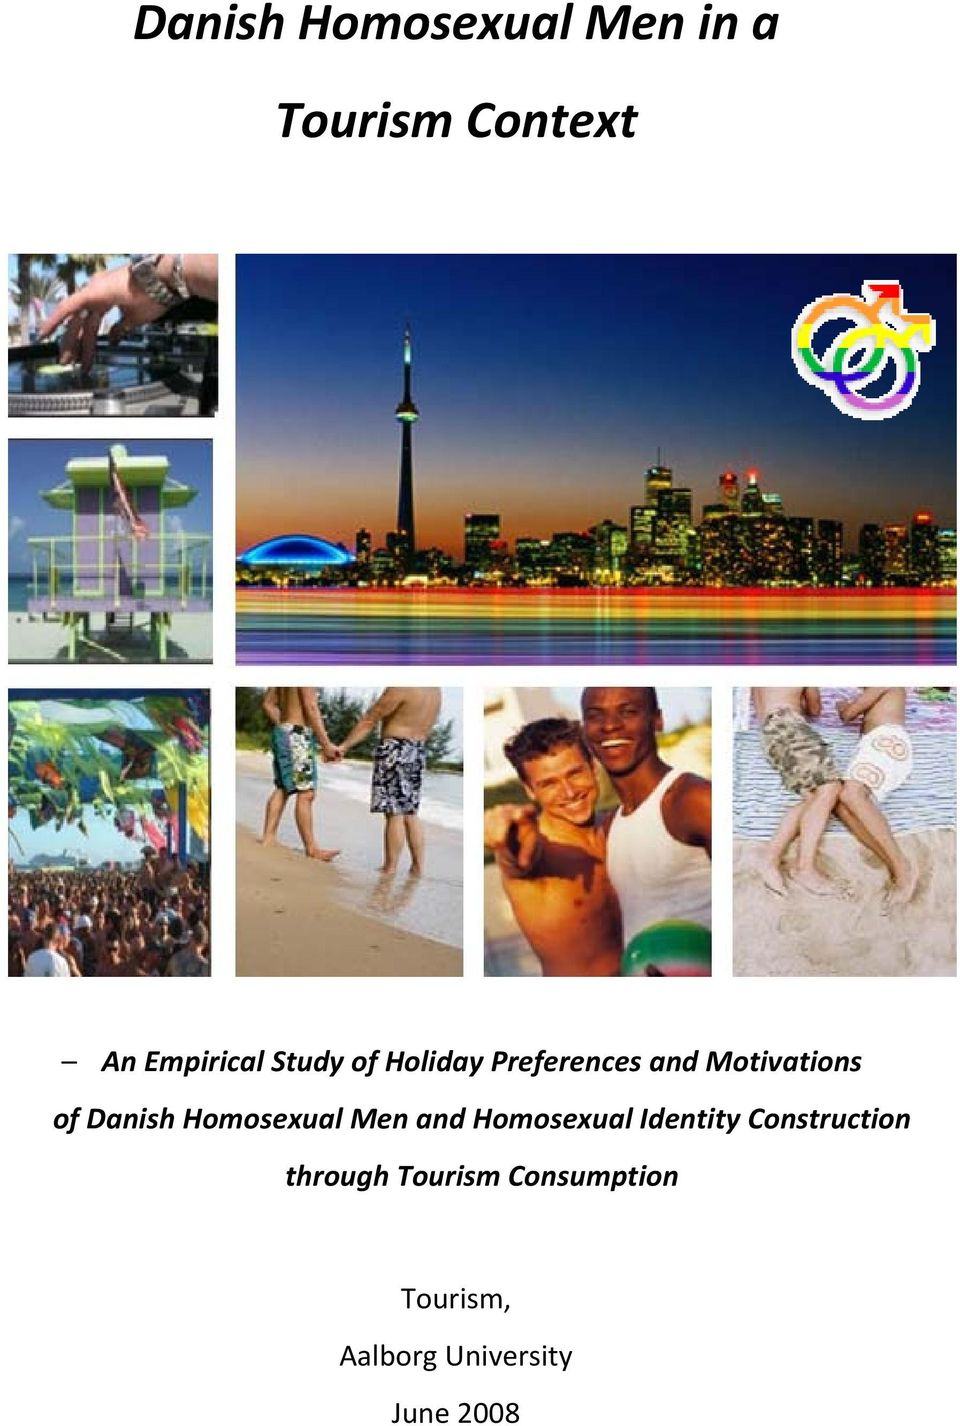 Homosexual Men and Homosexual Identity Construction